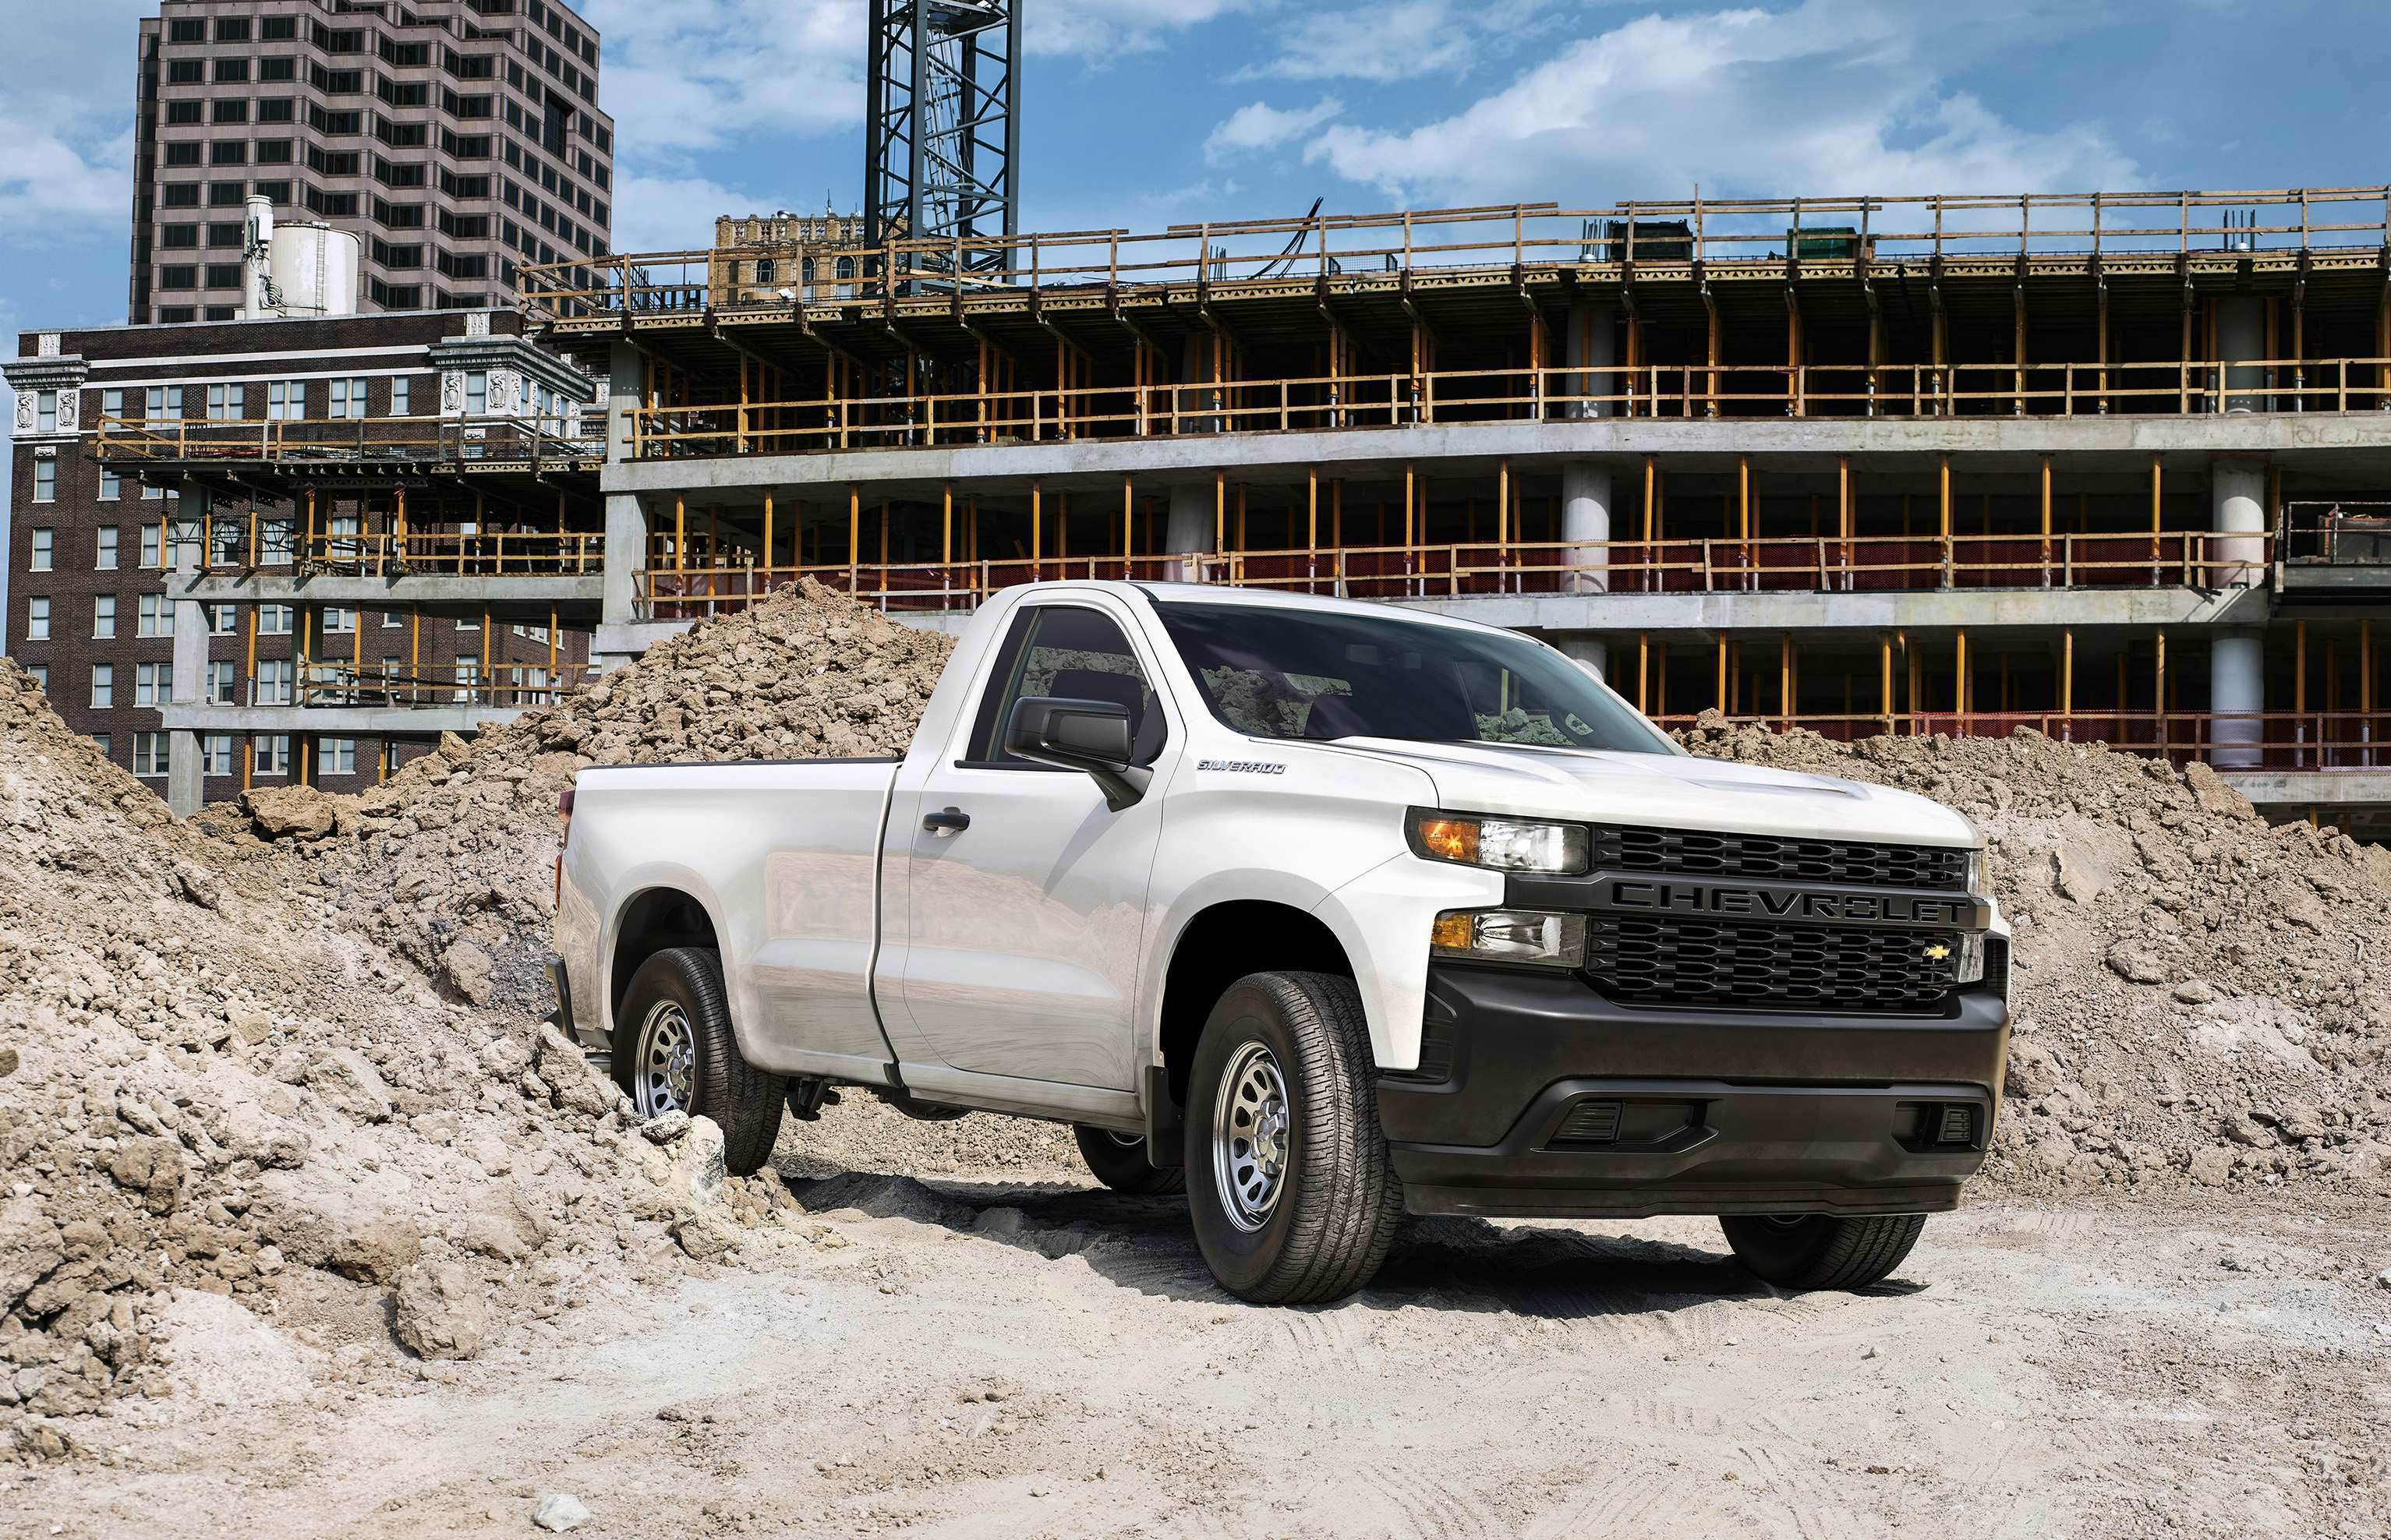 61 All New 2020 Chevy Silverado First Drive for 2020 Chevy Silverado